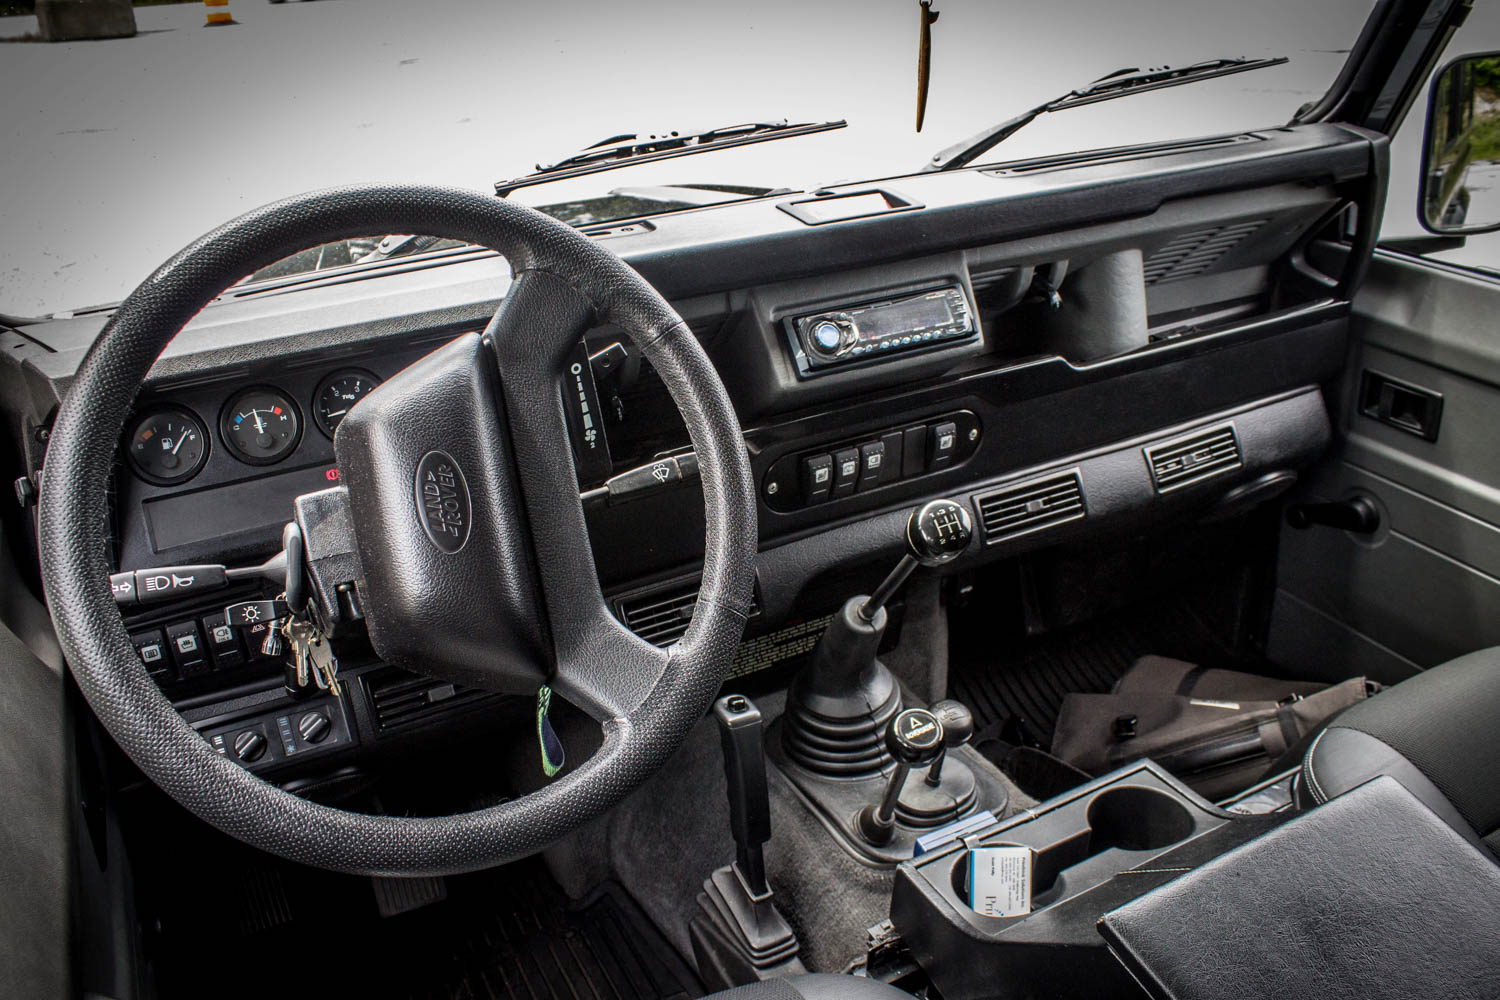 Land Rover Defender 110 TD5 interior